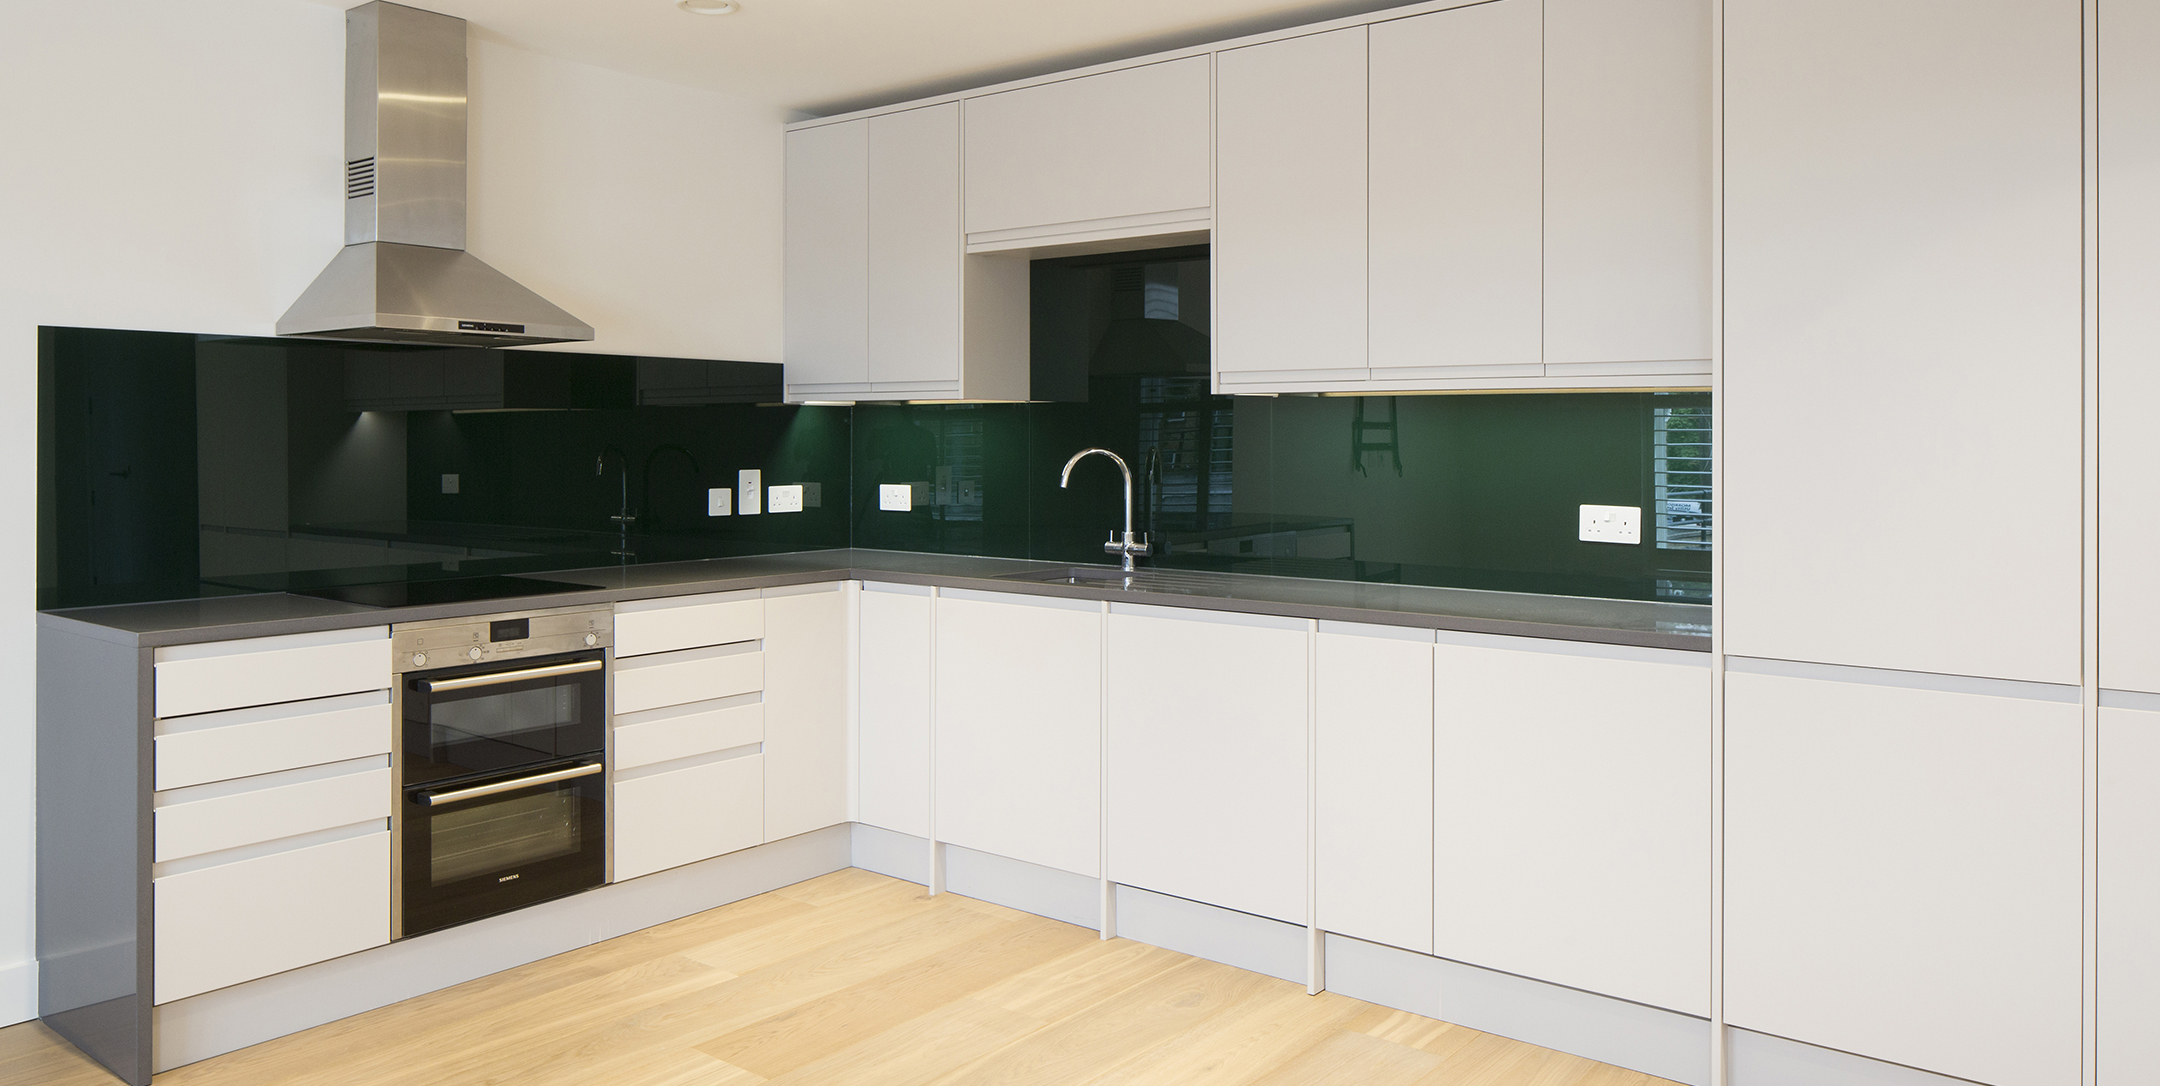 Home Refurbishments Knightsbridge SW1X - Ashville Inc